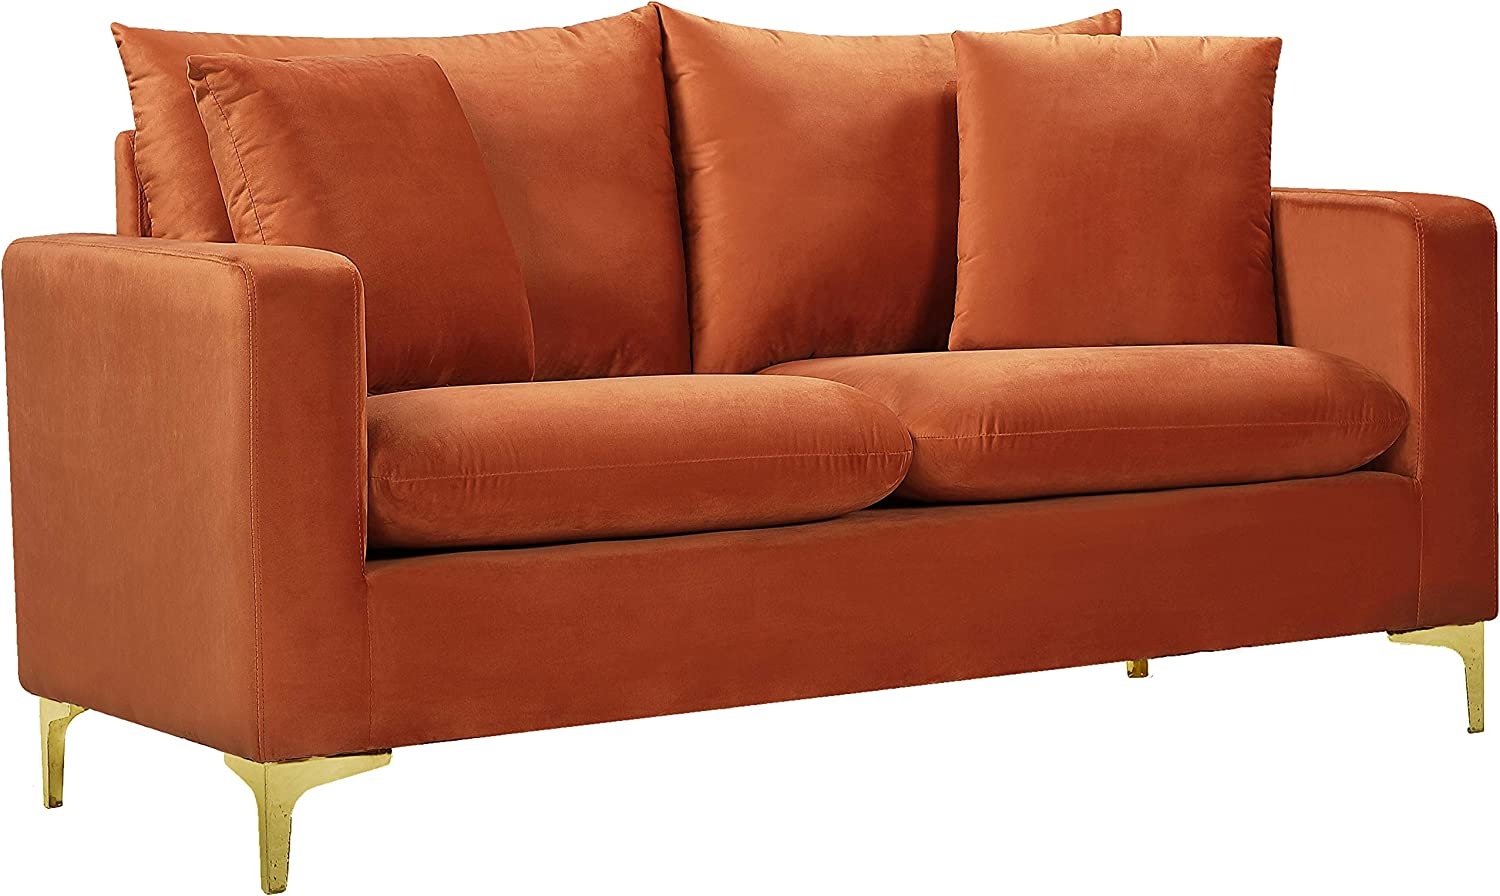 Meridian Furniture 633Cognac-L New product Naomi Collection Modern Indianapolis Mall Contemp